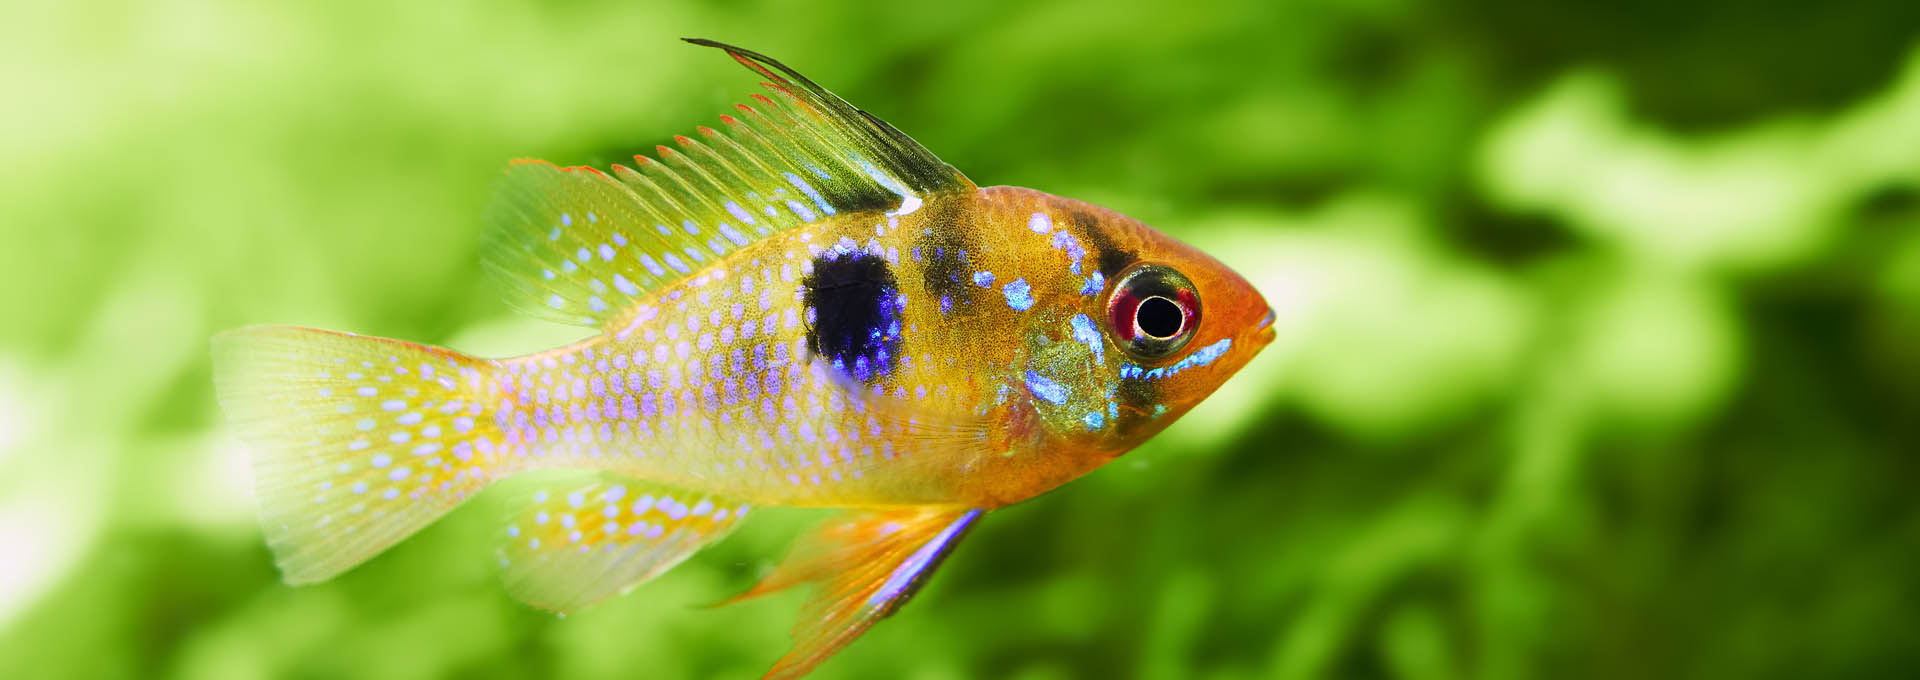 Papiliochromis-ramirezi-called-Butterfly-fish-_1920x681